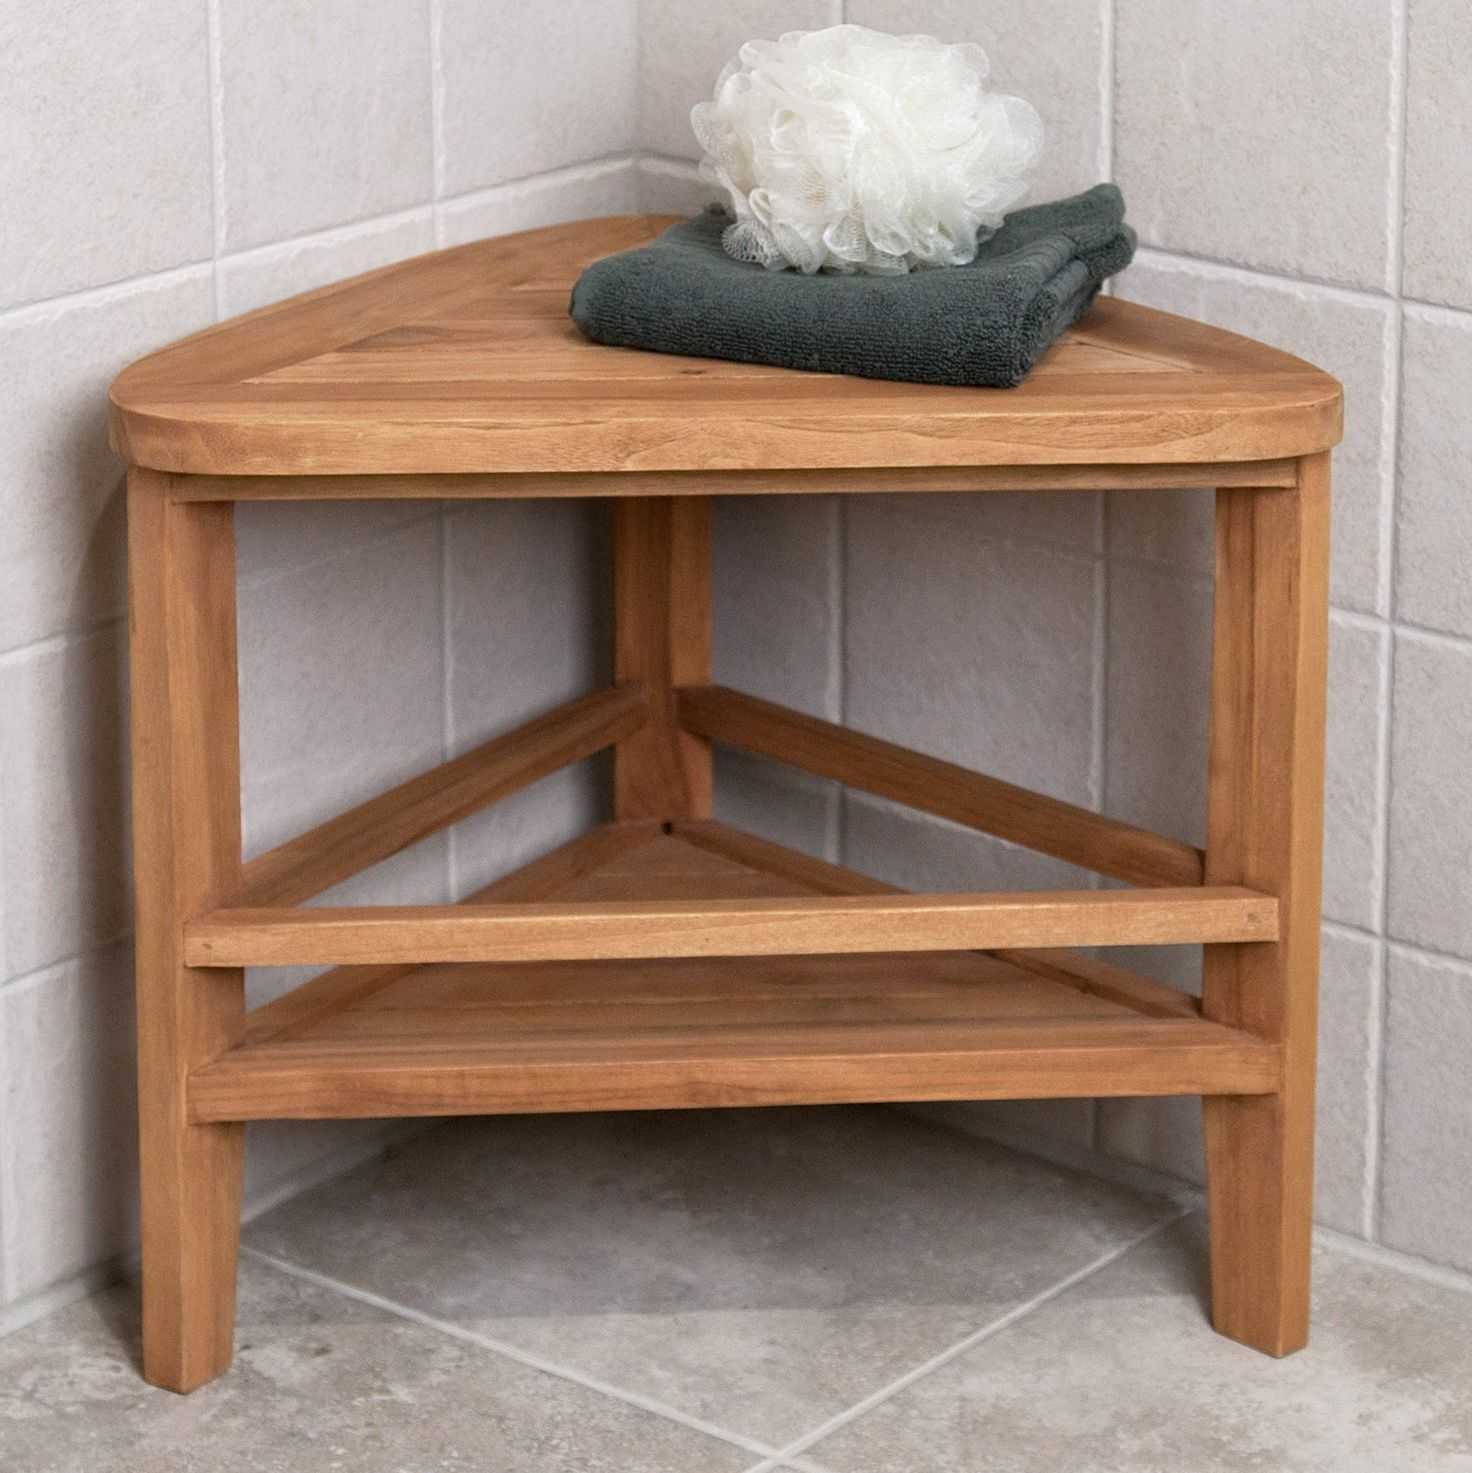 Teak Wood Shower Bench Target With Images Shower Stool Teak